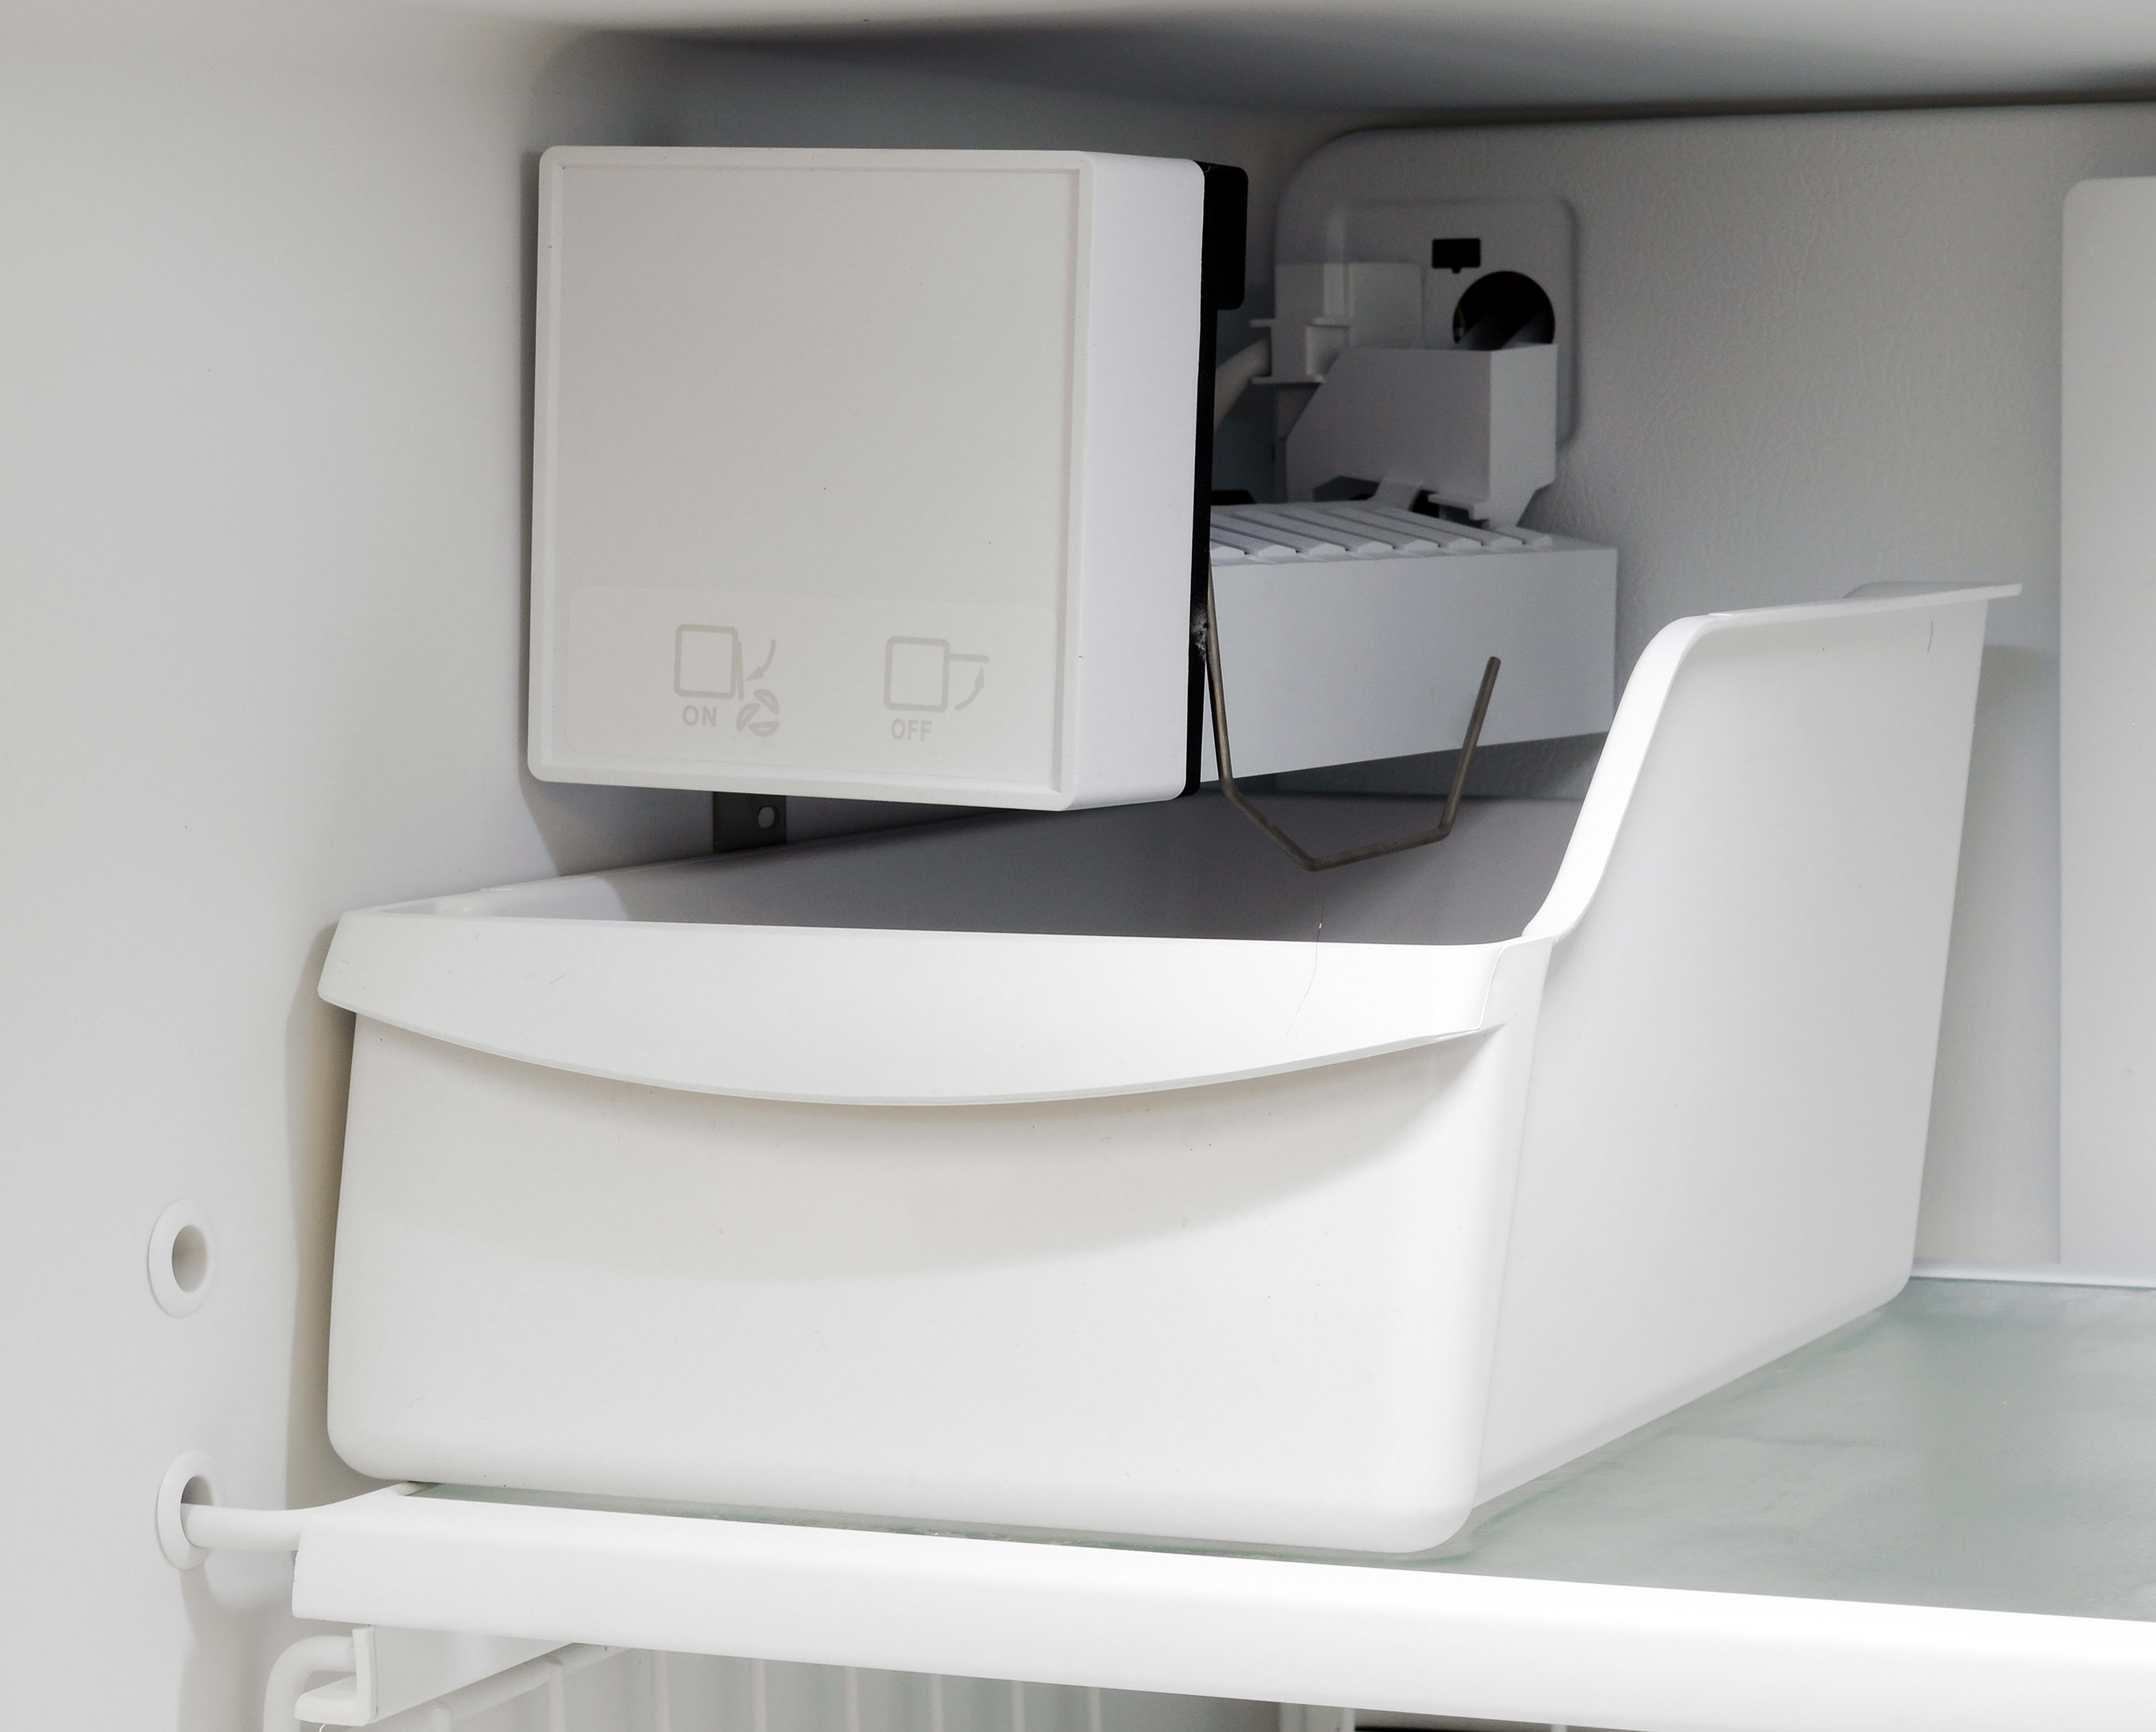 The inclusion of an icemaker in the Frigidaire Gallery FGHI2164QF adds to the price tag, and it's also the only extra feature in this model aside from the flexible storage.